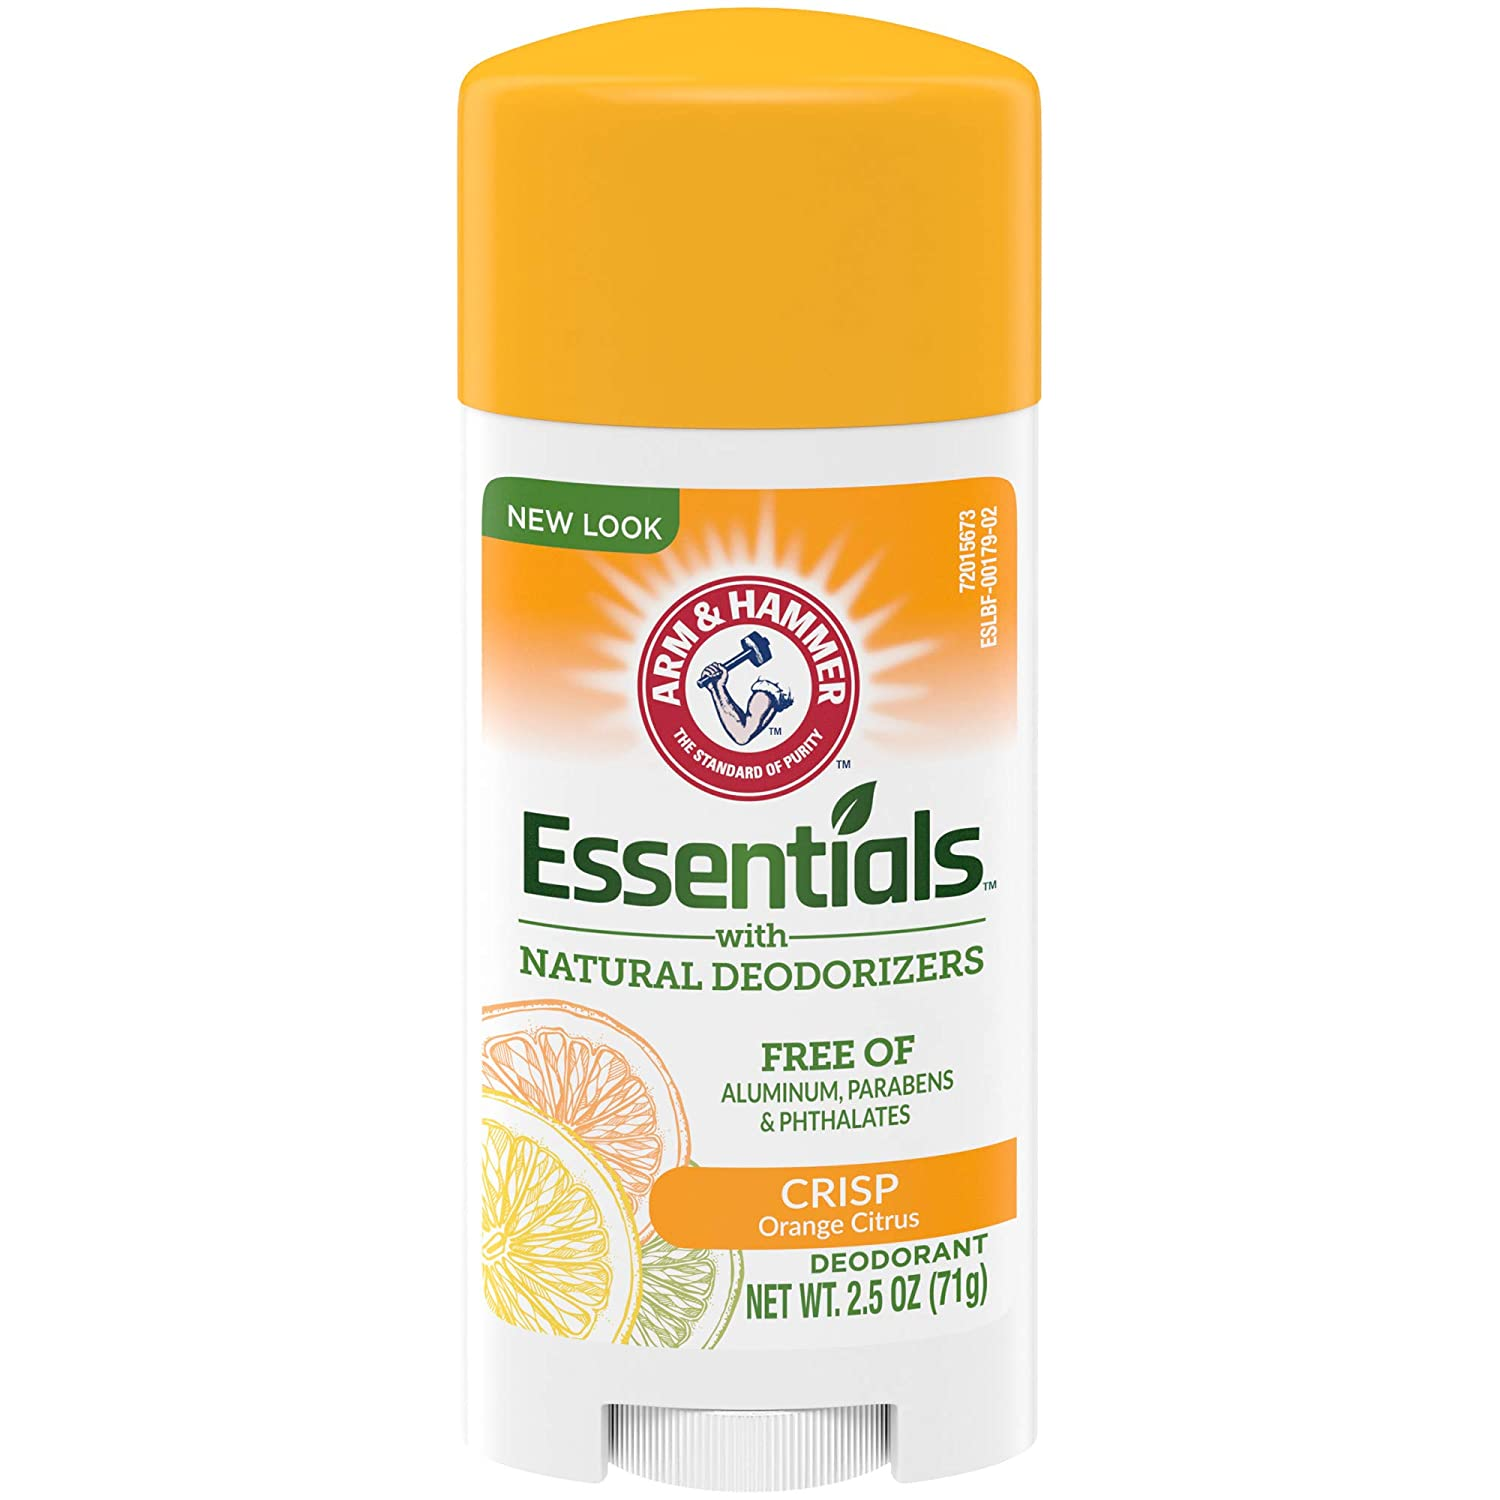 ARM & HAMMER Essentials Deodorant, Crisp Orange Citrus, 2.5 OZ